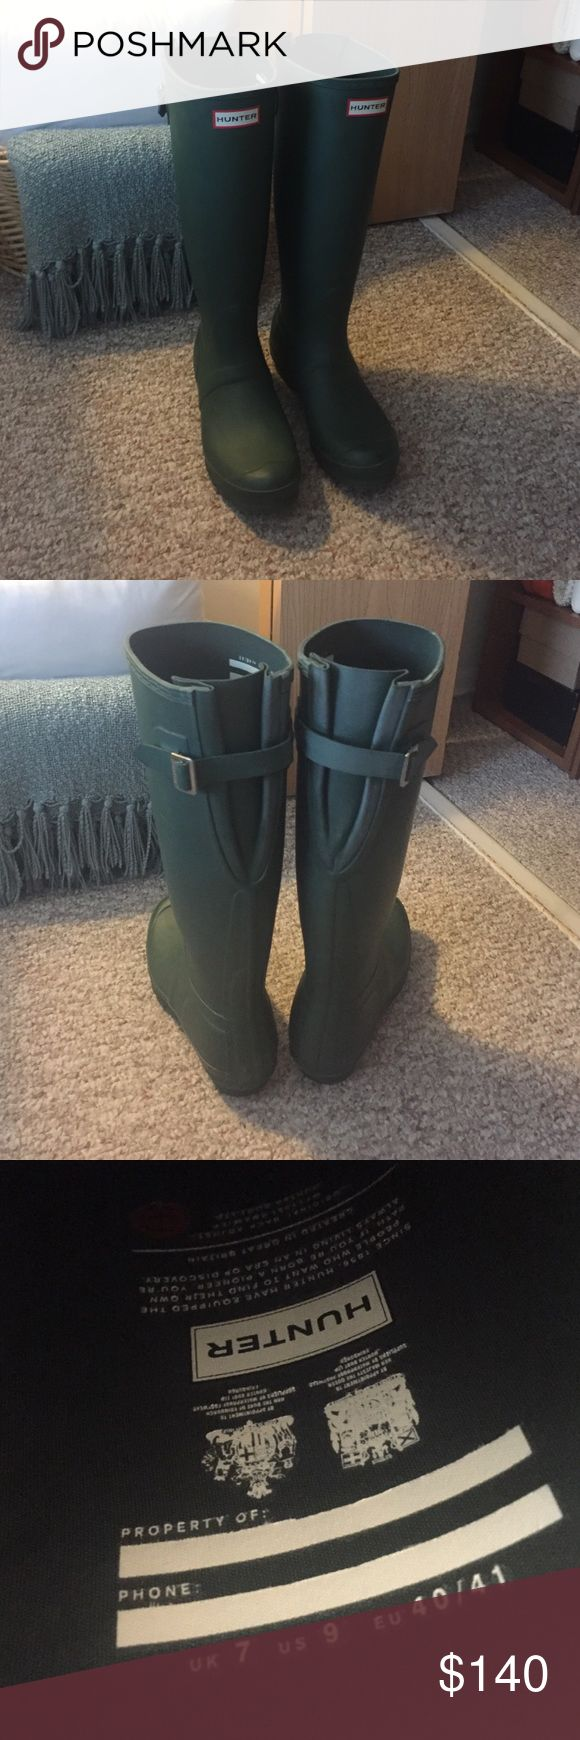 Tall Matte Green Wide Calf Hunter Boots Brand new, worn once for apple picking! lol perfect condition, matte green color, wide calf style so very comfortable. Size 9. Hunter Boots Shoes Winter & Rain Boots